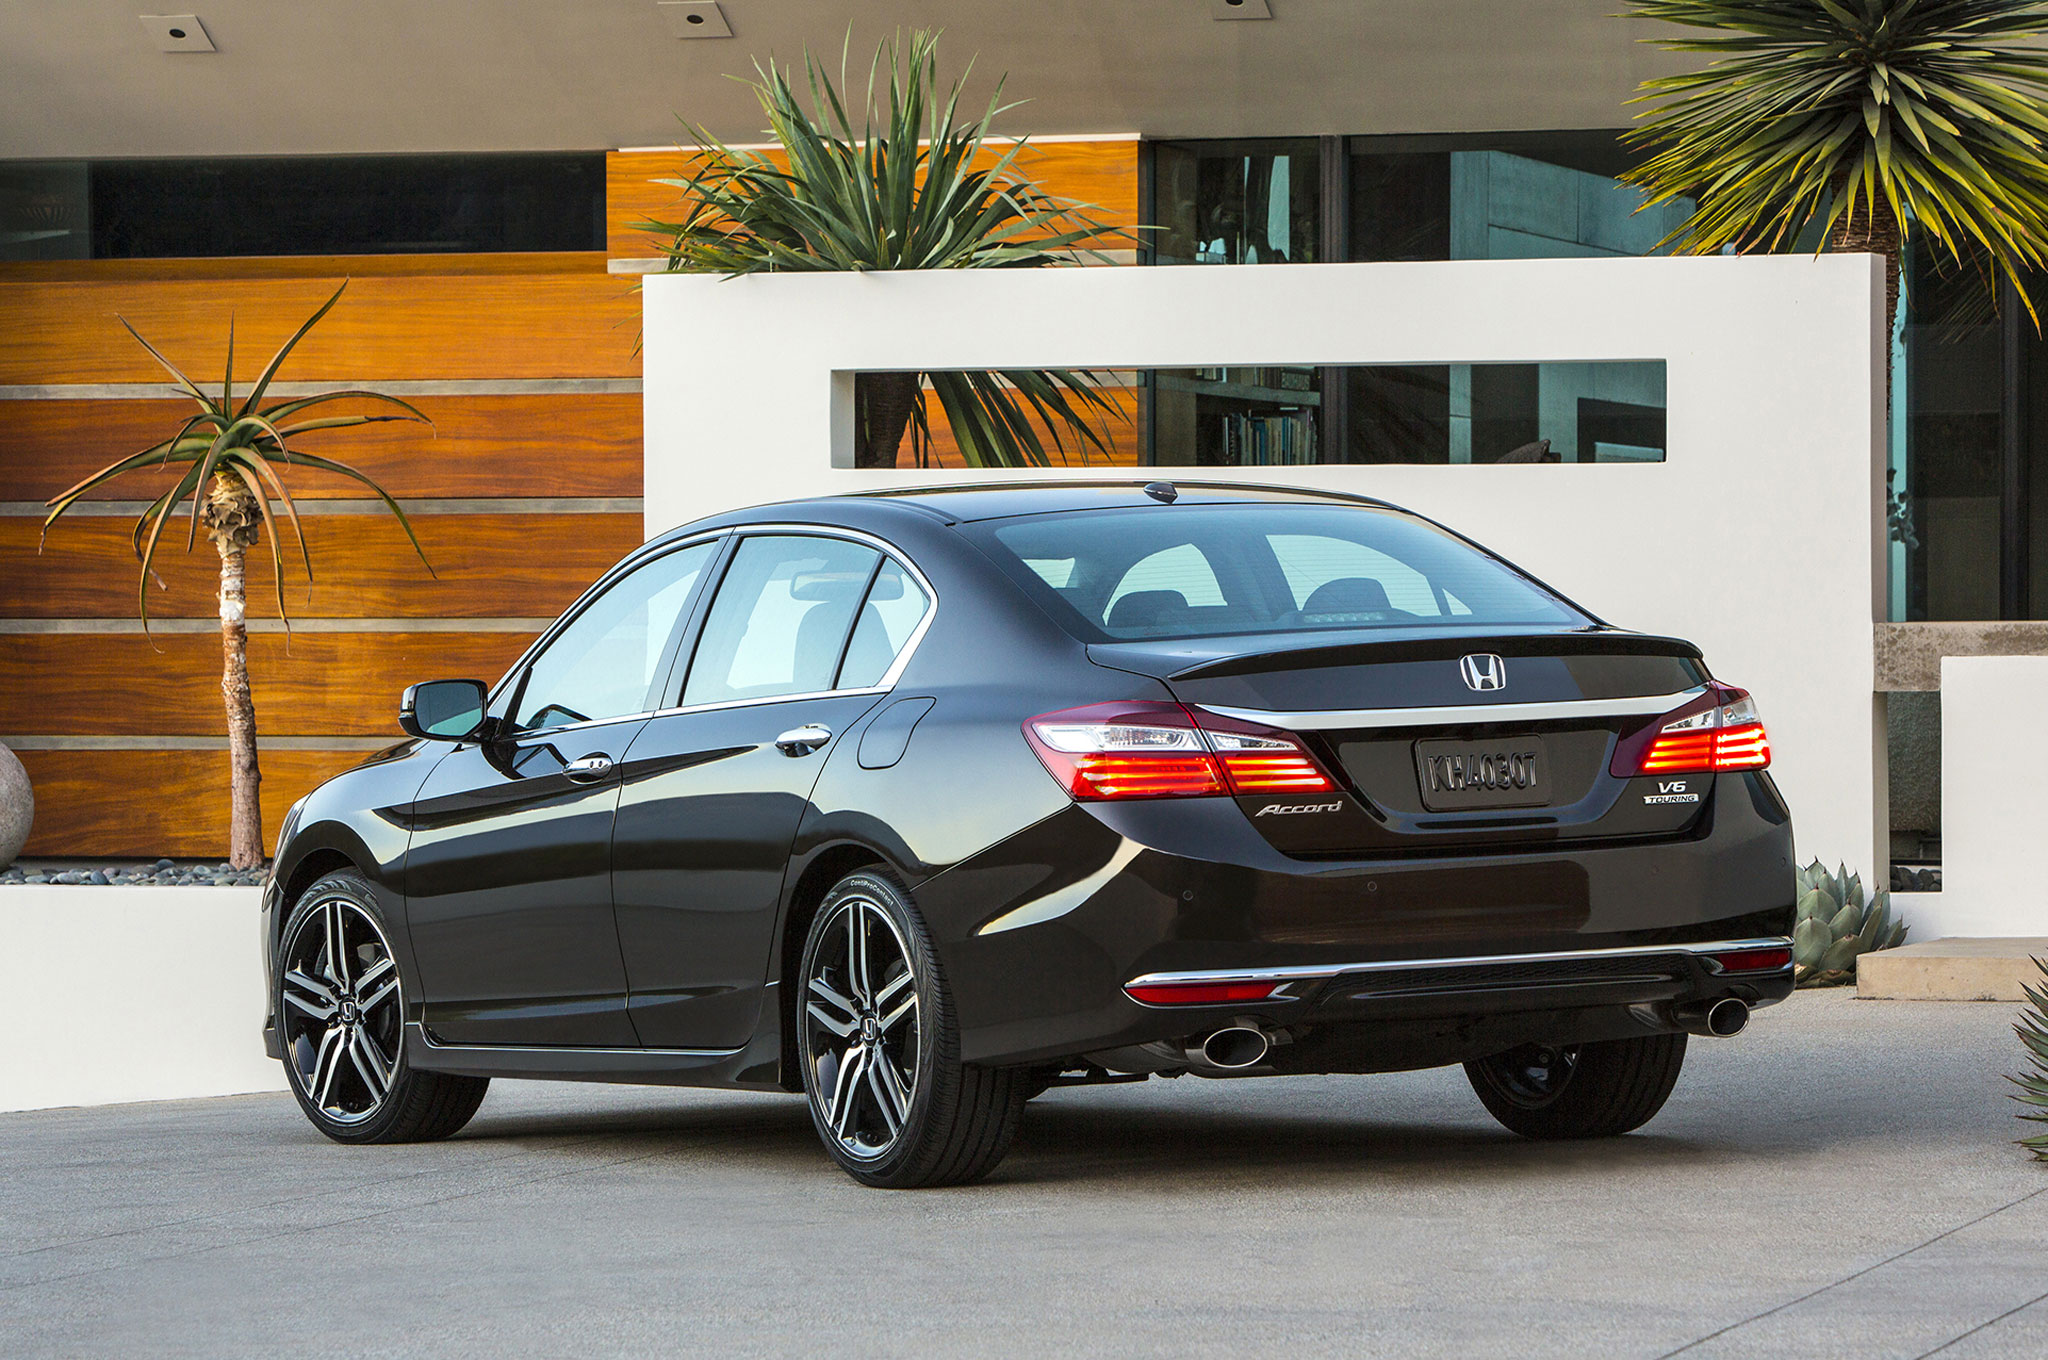 New 2016 Honda Accord Rear View